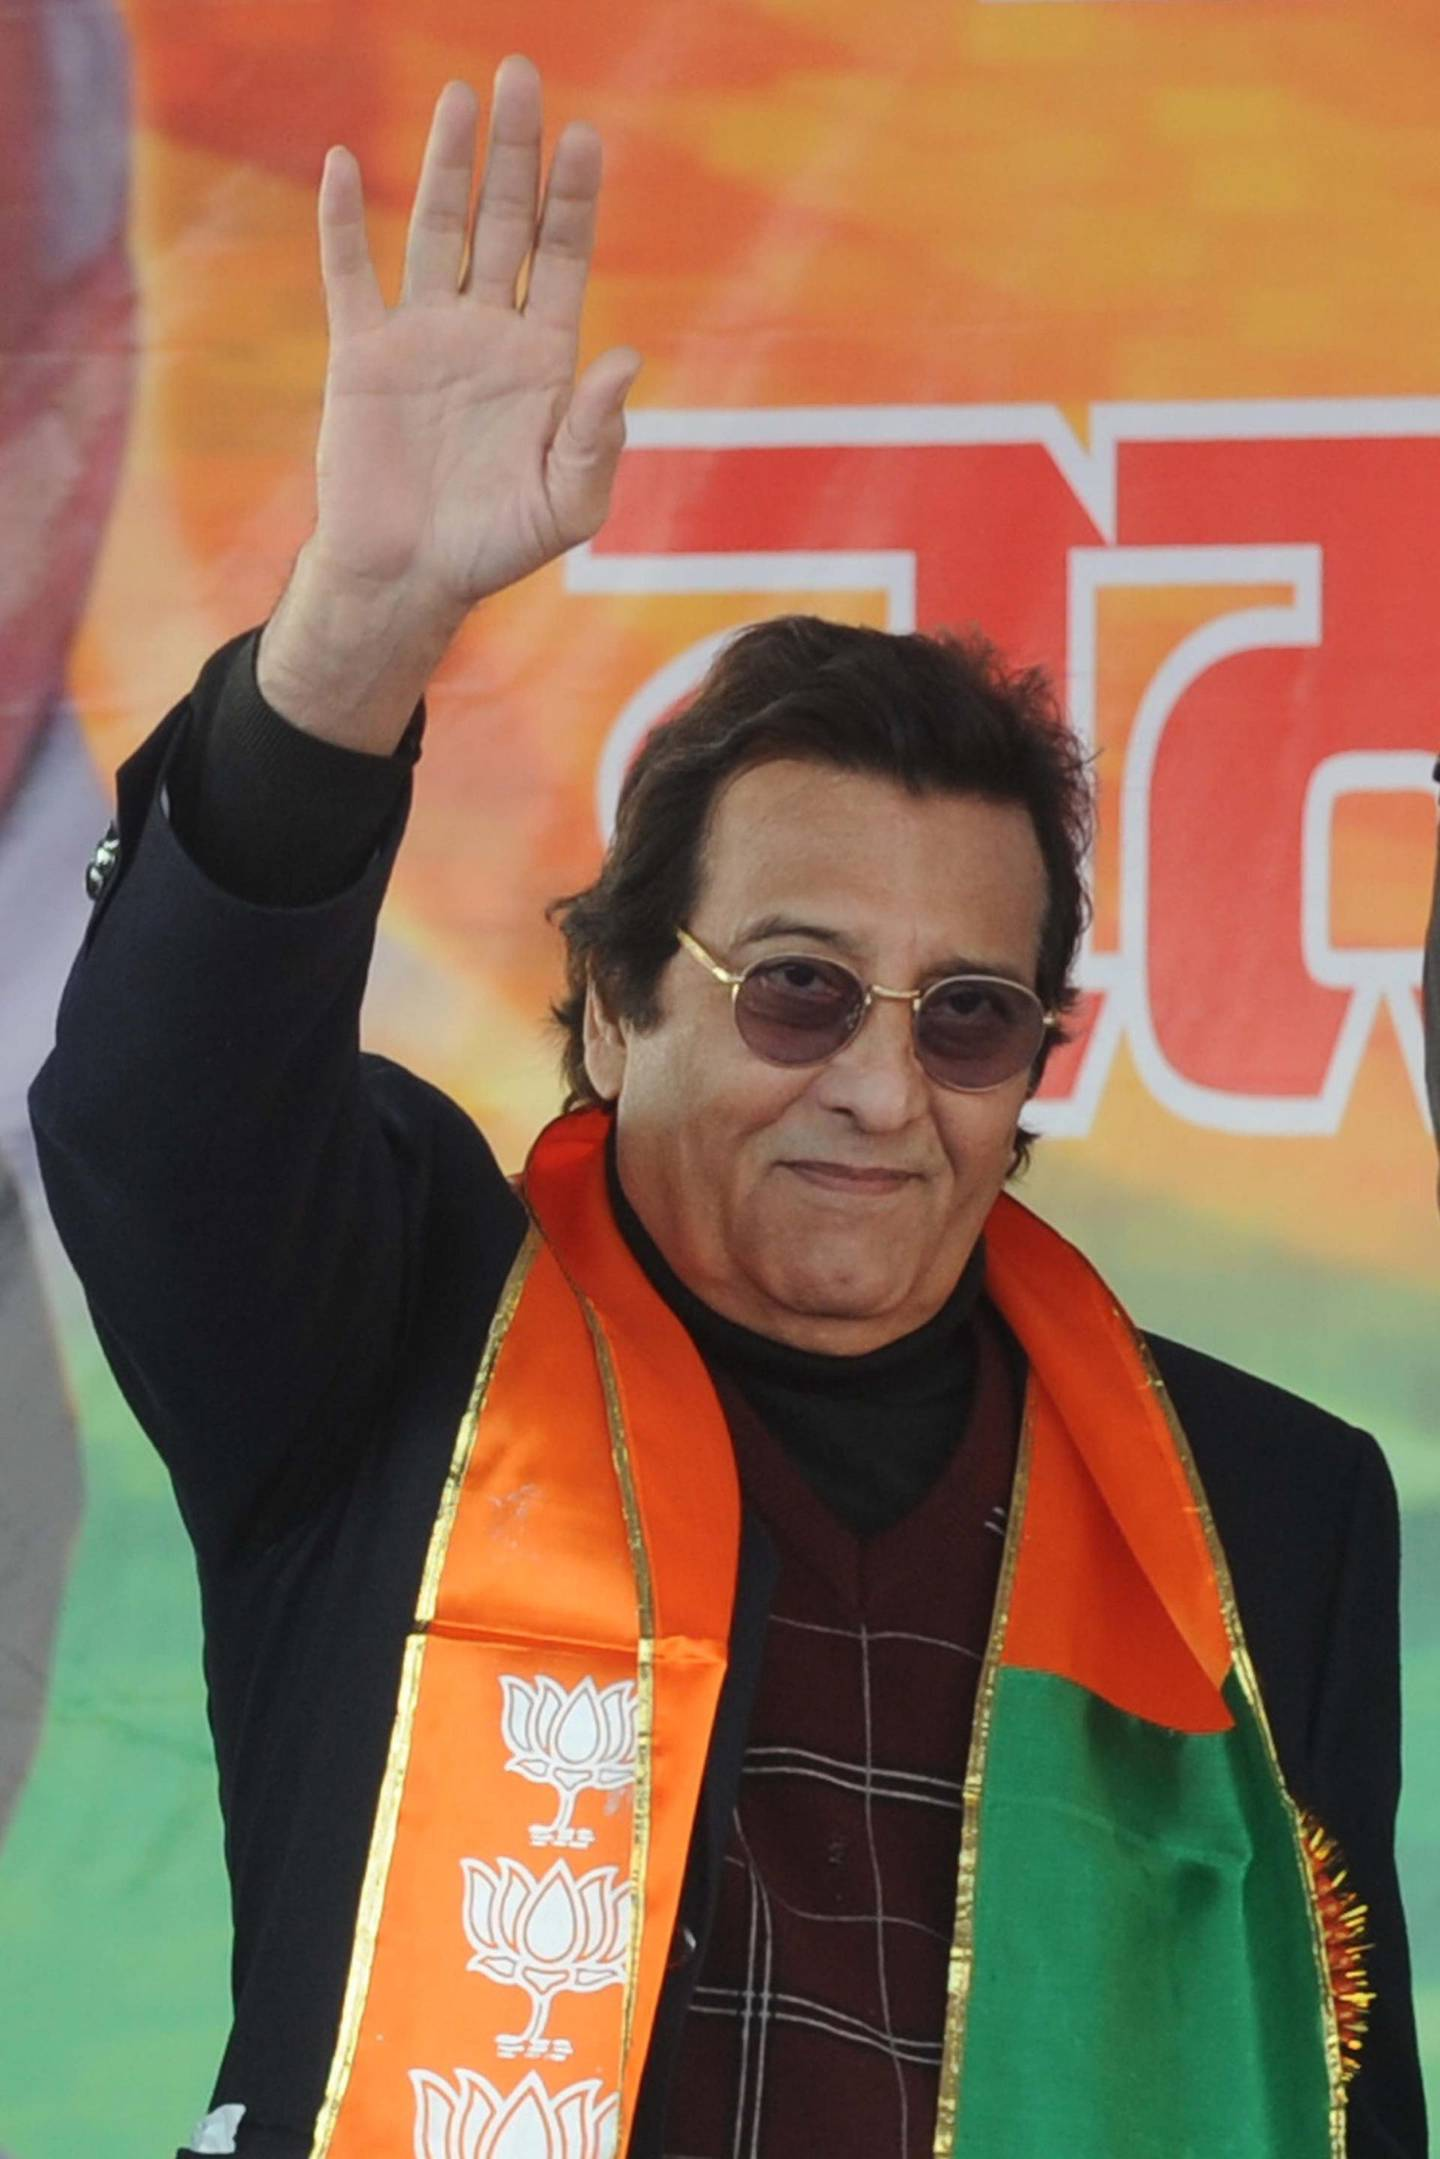 Indian Bollywood actor and Bhartiya Janata Party (BJP) leader  Vinod Khanna (C) waves during a BJP rally at Rama Mandi in Jalandhar on December 24, 2011. The principal opposition party of India, the BJP, organised an election rally ahead of assembly elections in five states. AFP PHOTO/ NARINDER NANU (Photo by NARINDER NANU / AFP)